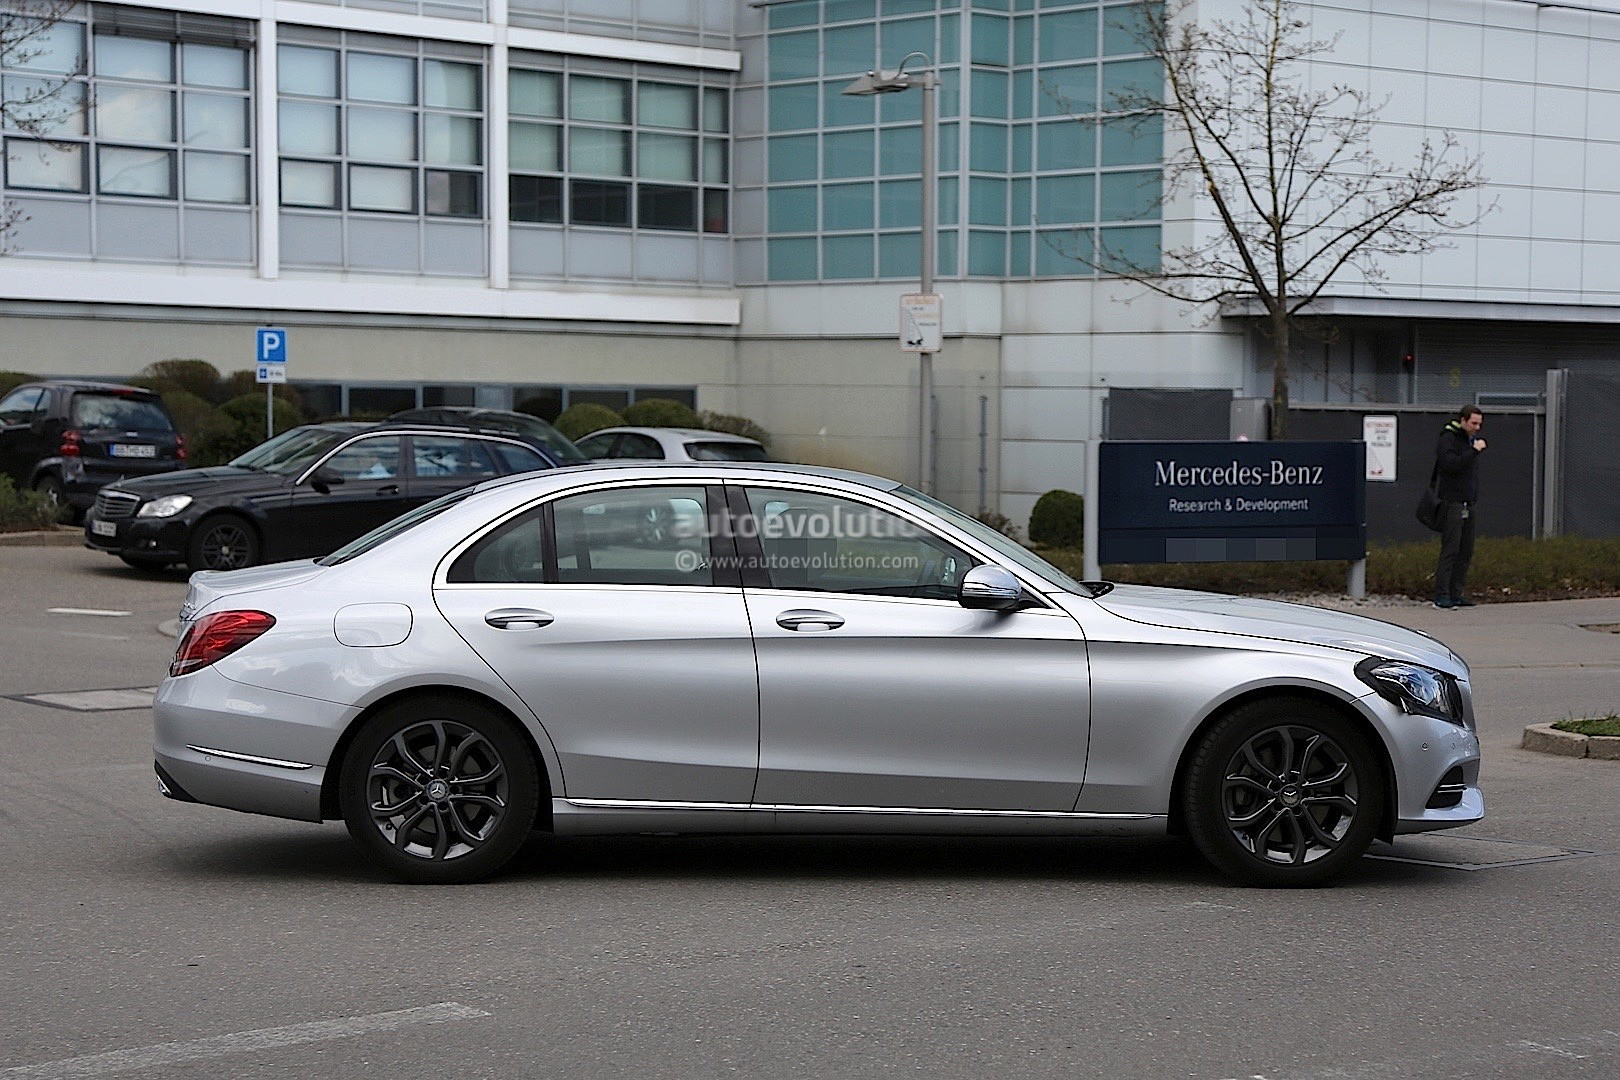 2017 mercedes benz c class facelift spied in germany autoevolution. Black Bedroom Furniture Sets. Home Design Ideas